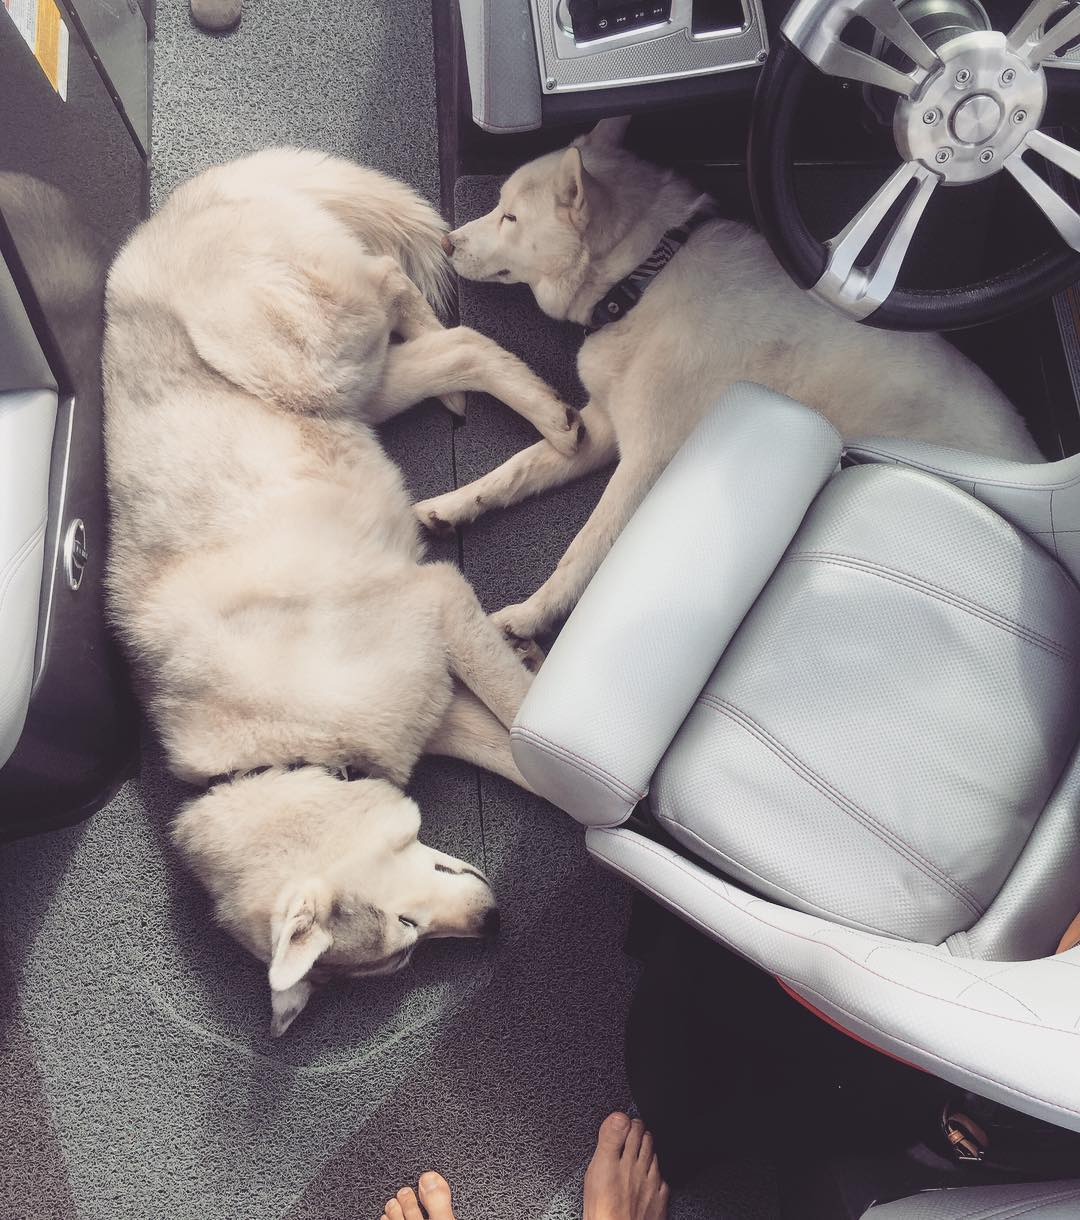 This is what our dogs do all day on our boat. They have zero interest in our wakesurfing or tubing. Their only interest here is food, getting pets, or when we arrive on shore and they can go back to hunting/chasing wildlife. #sleepsohard #sleepanywhere...